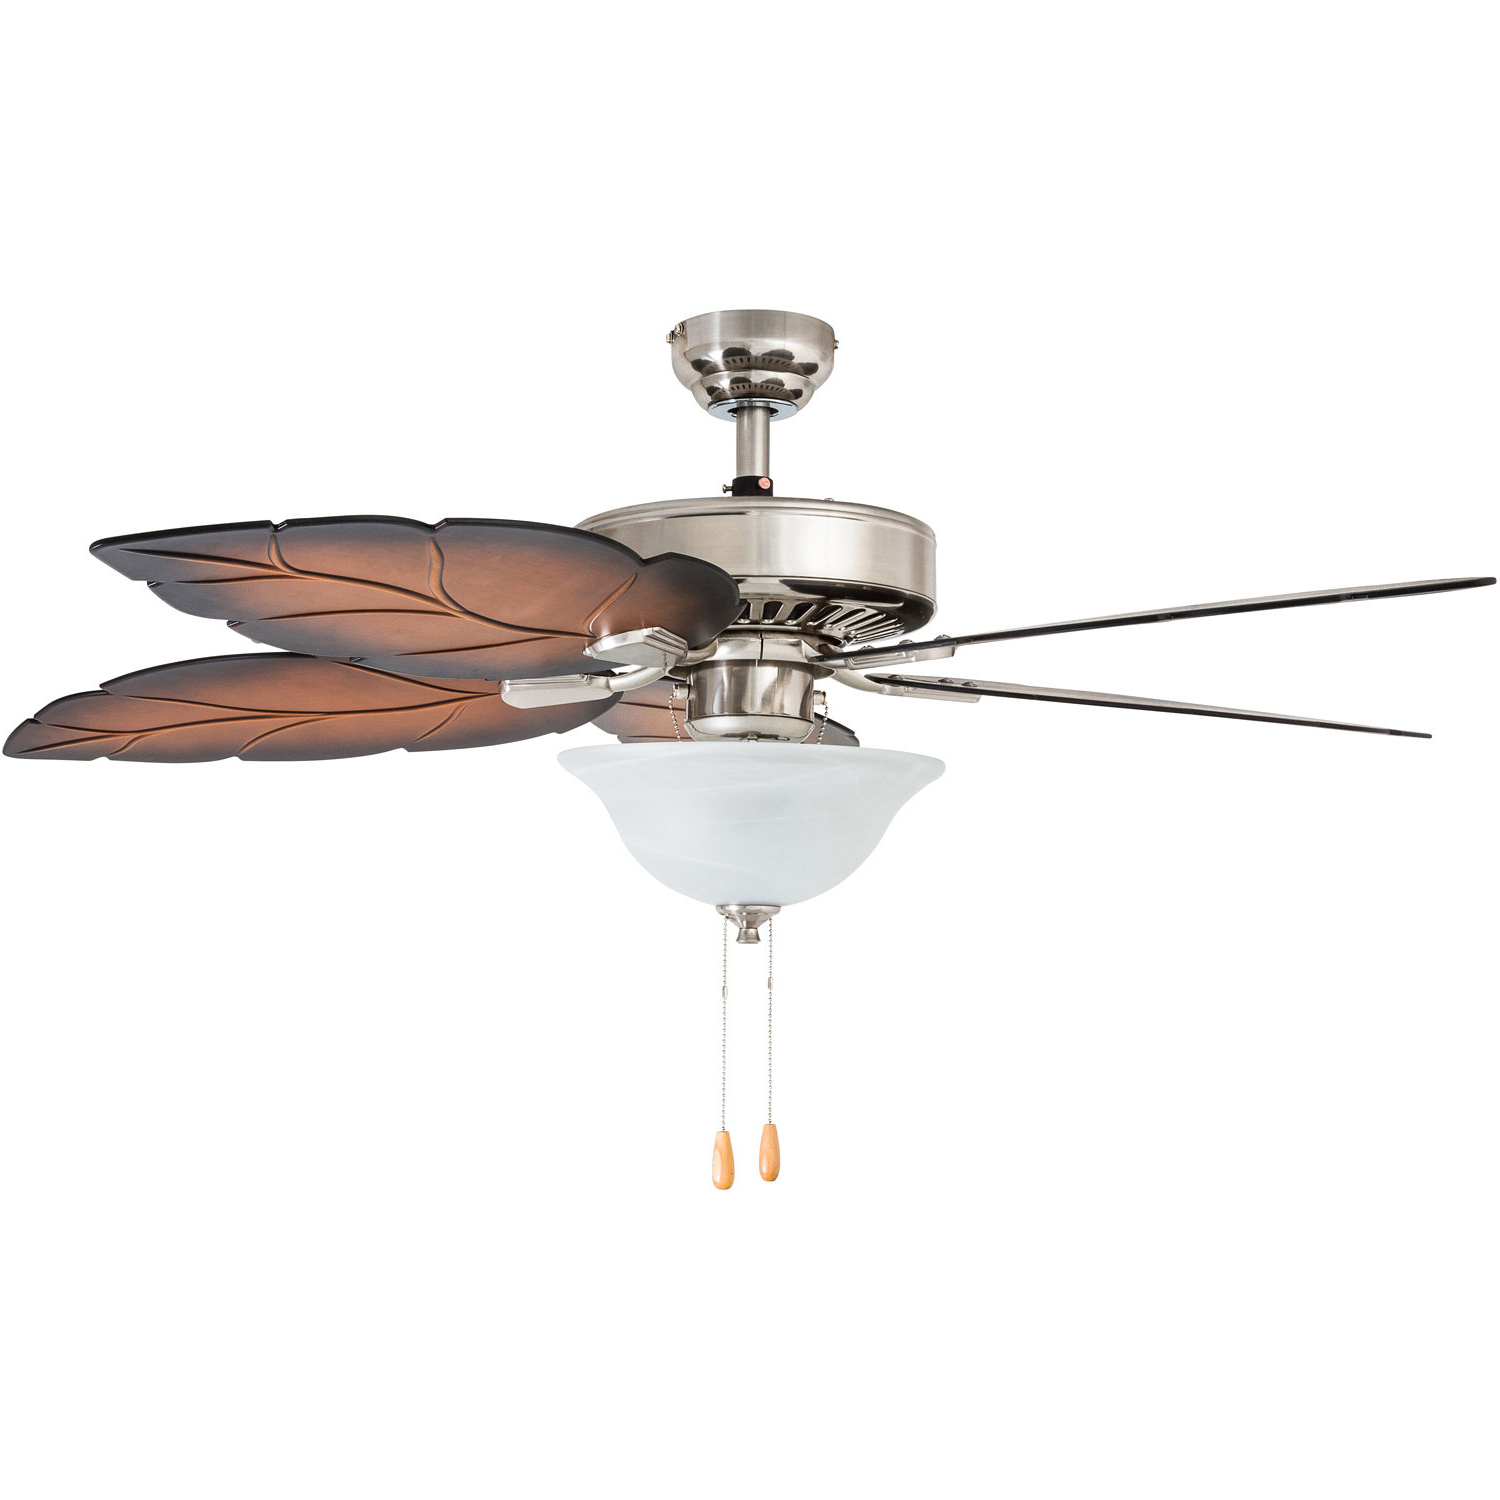 "52"" Monterry 5 Blade Led Ceiling Fan Intended For Favorite Saito 6 Blade Ceiling Fans (View 10 of 20)"